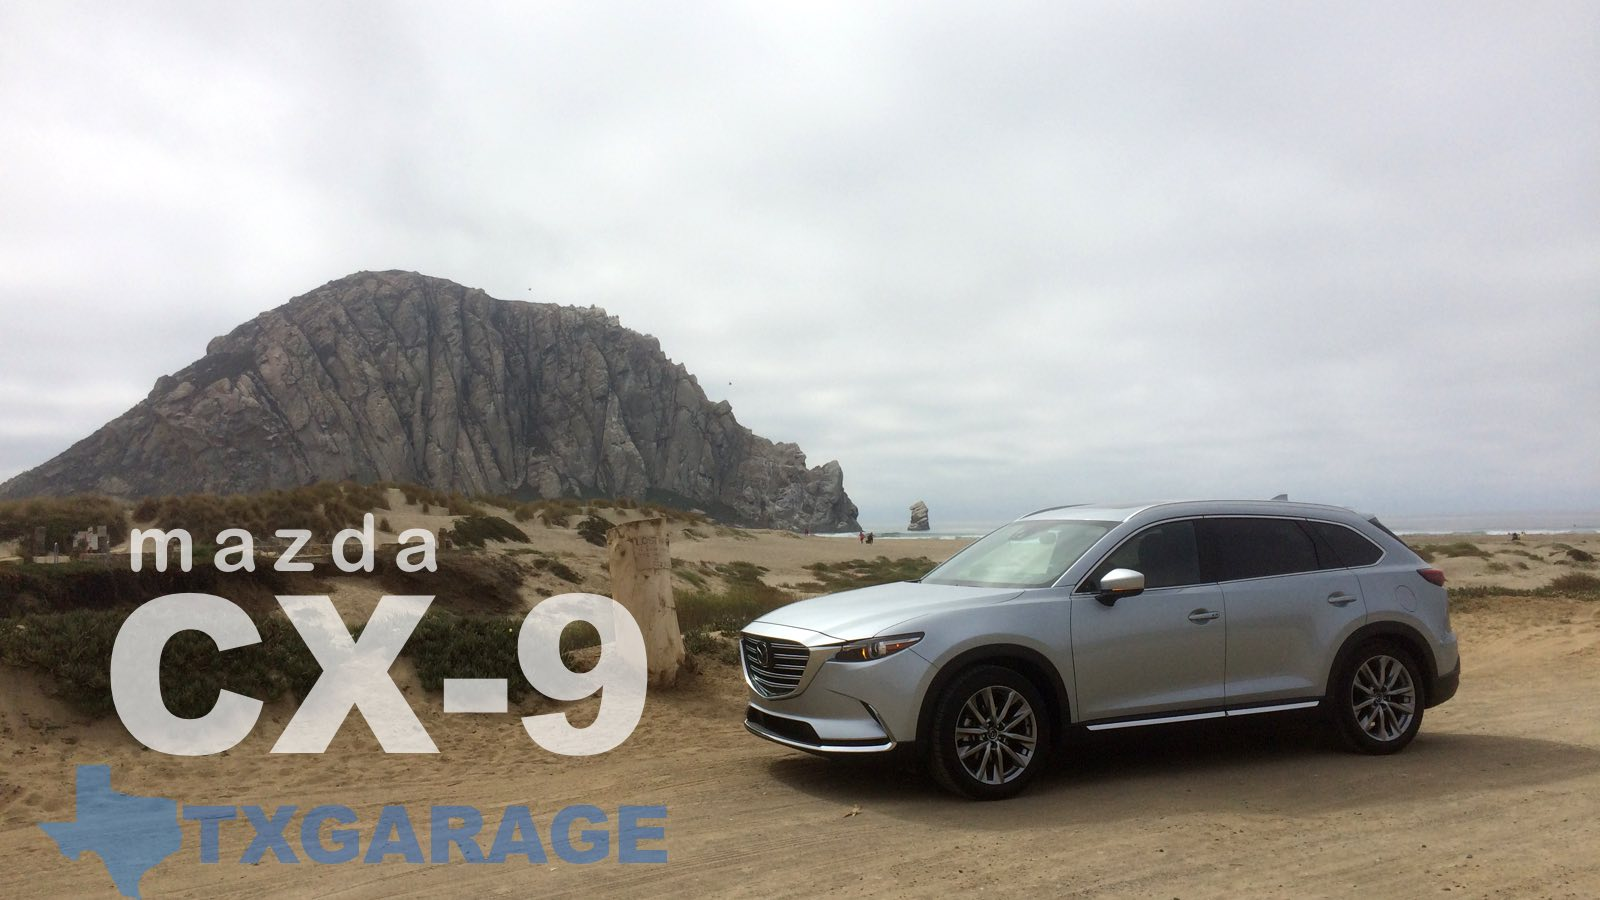 mazda-cx9-roadtrip-cover